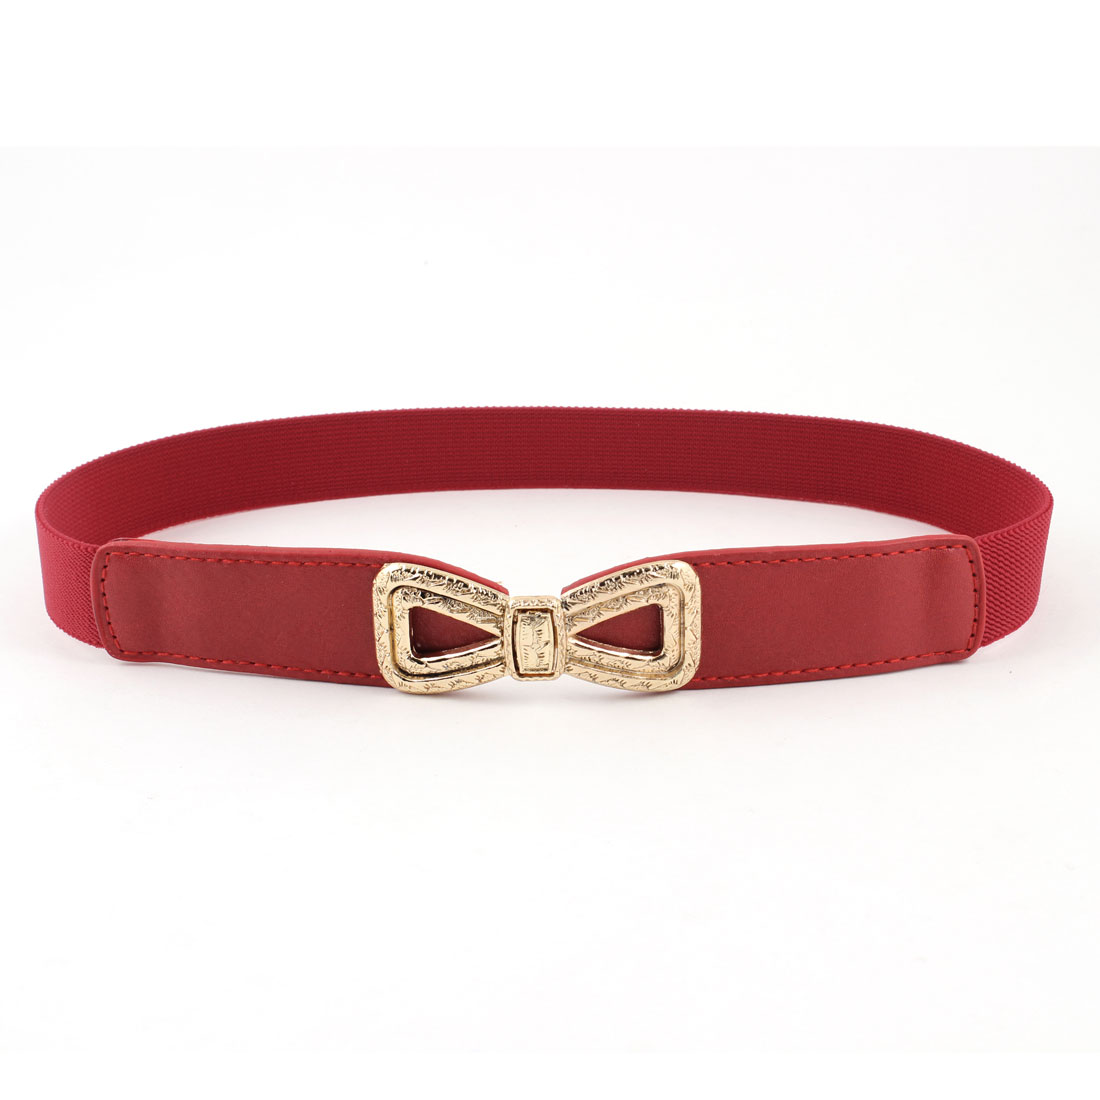 Lady 8 Shape Embossment Interlock Buckle Faux Leather Stretchy Belt Red